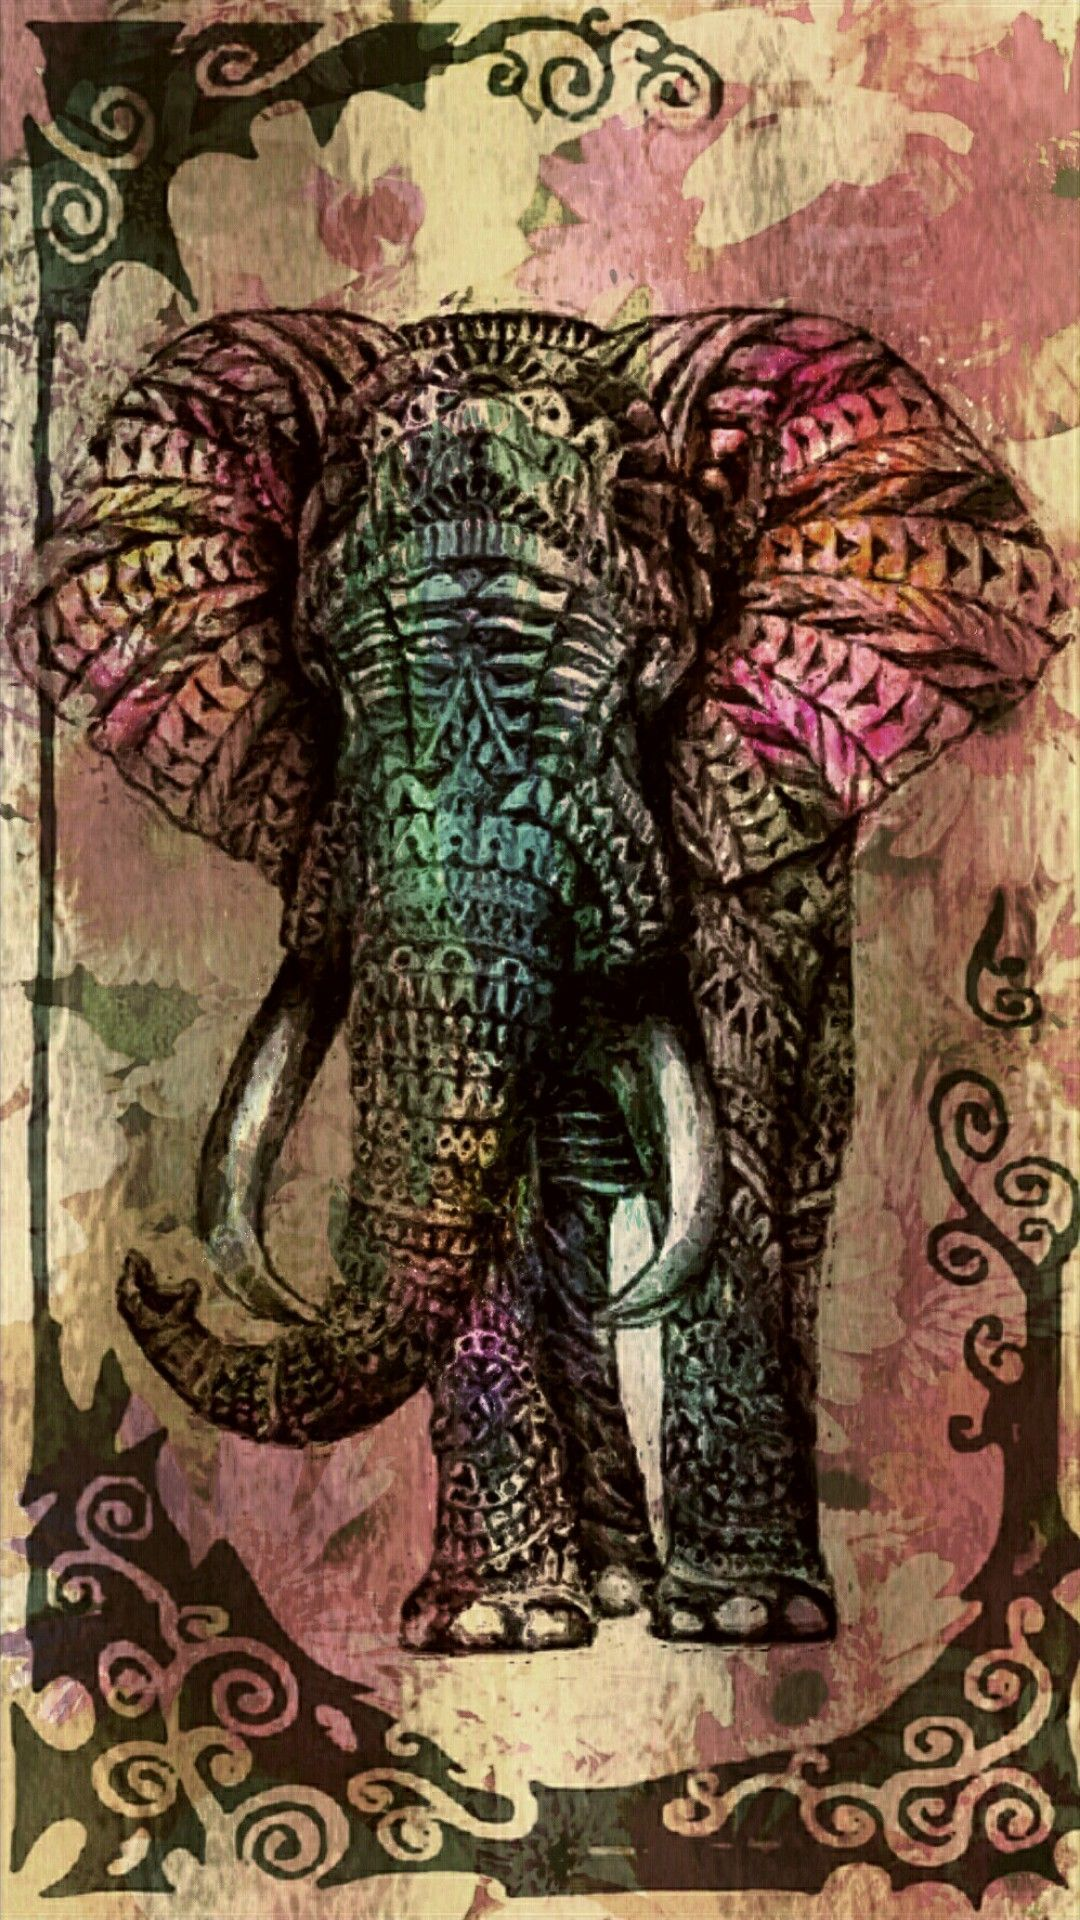 Cage The Elephant Iphone Wallpapers Top Free Cage The Elephant